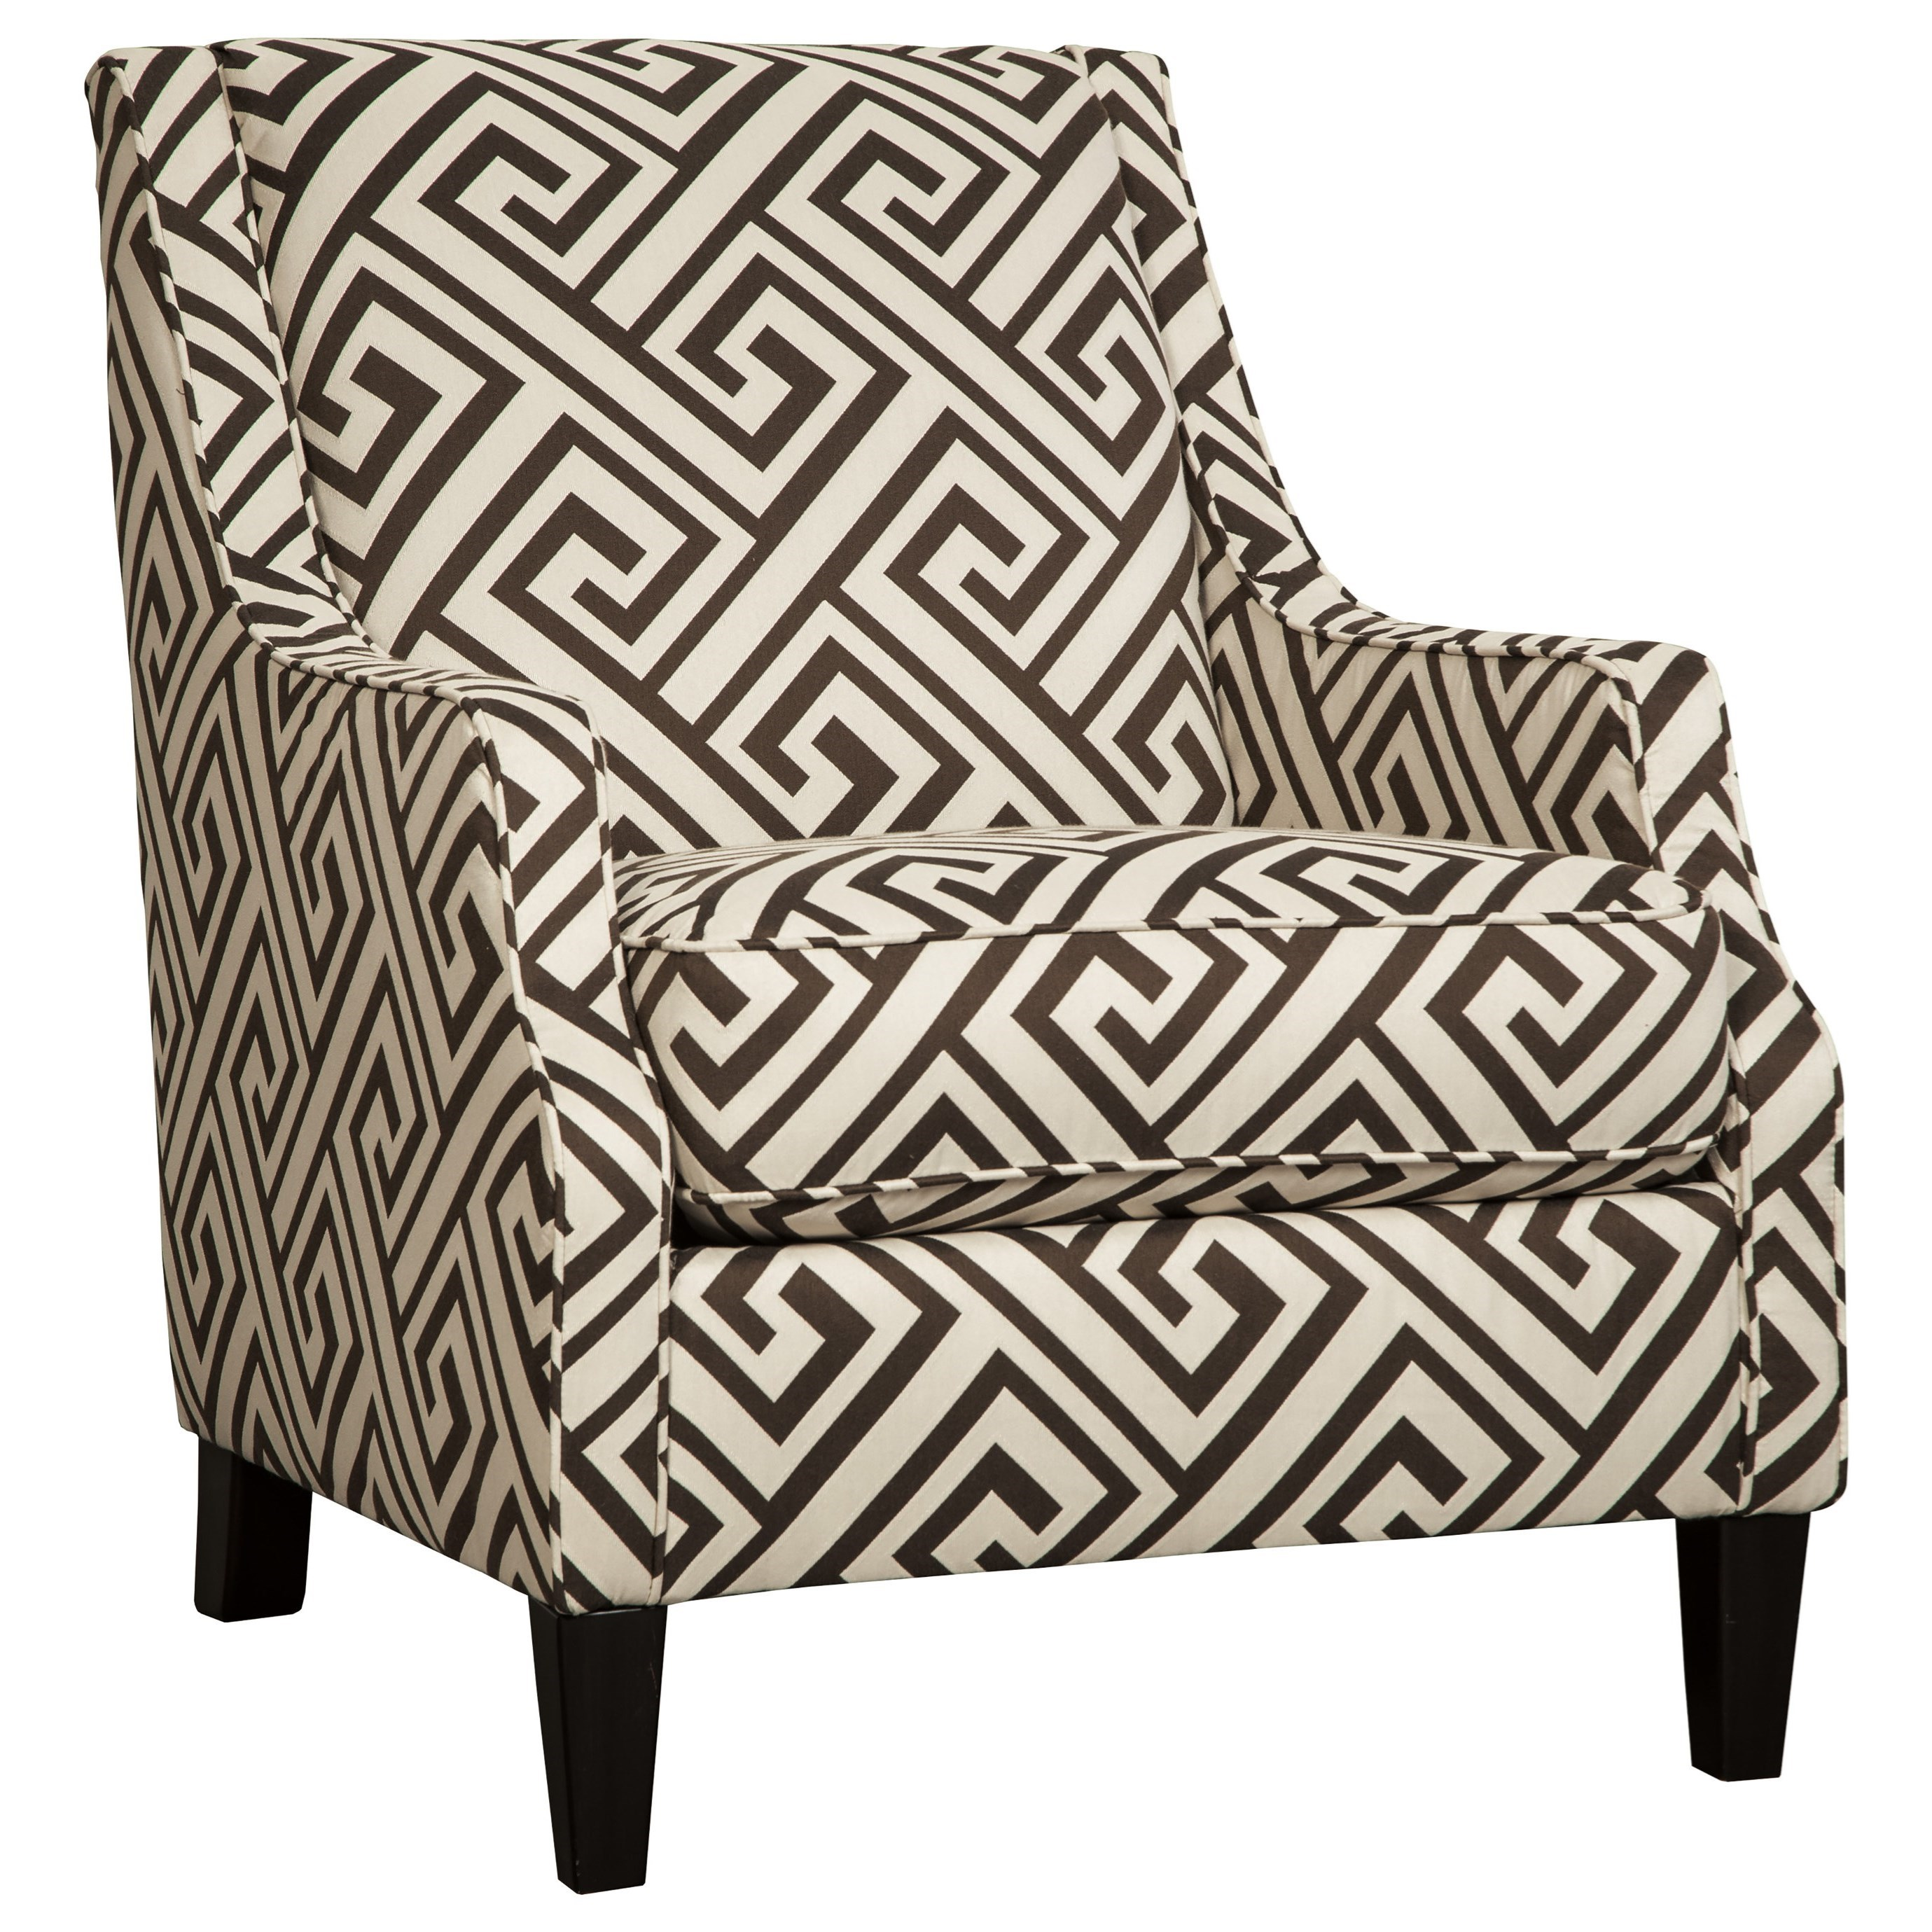 greek style furniture vintage french style benchcraft carlinworth accent chair item number 8440121 greek key fabric value city